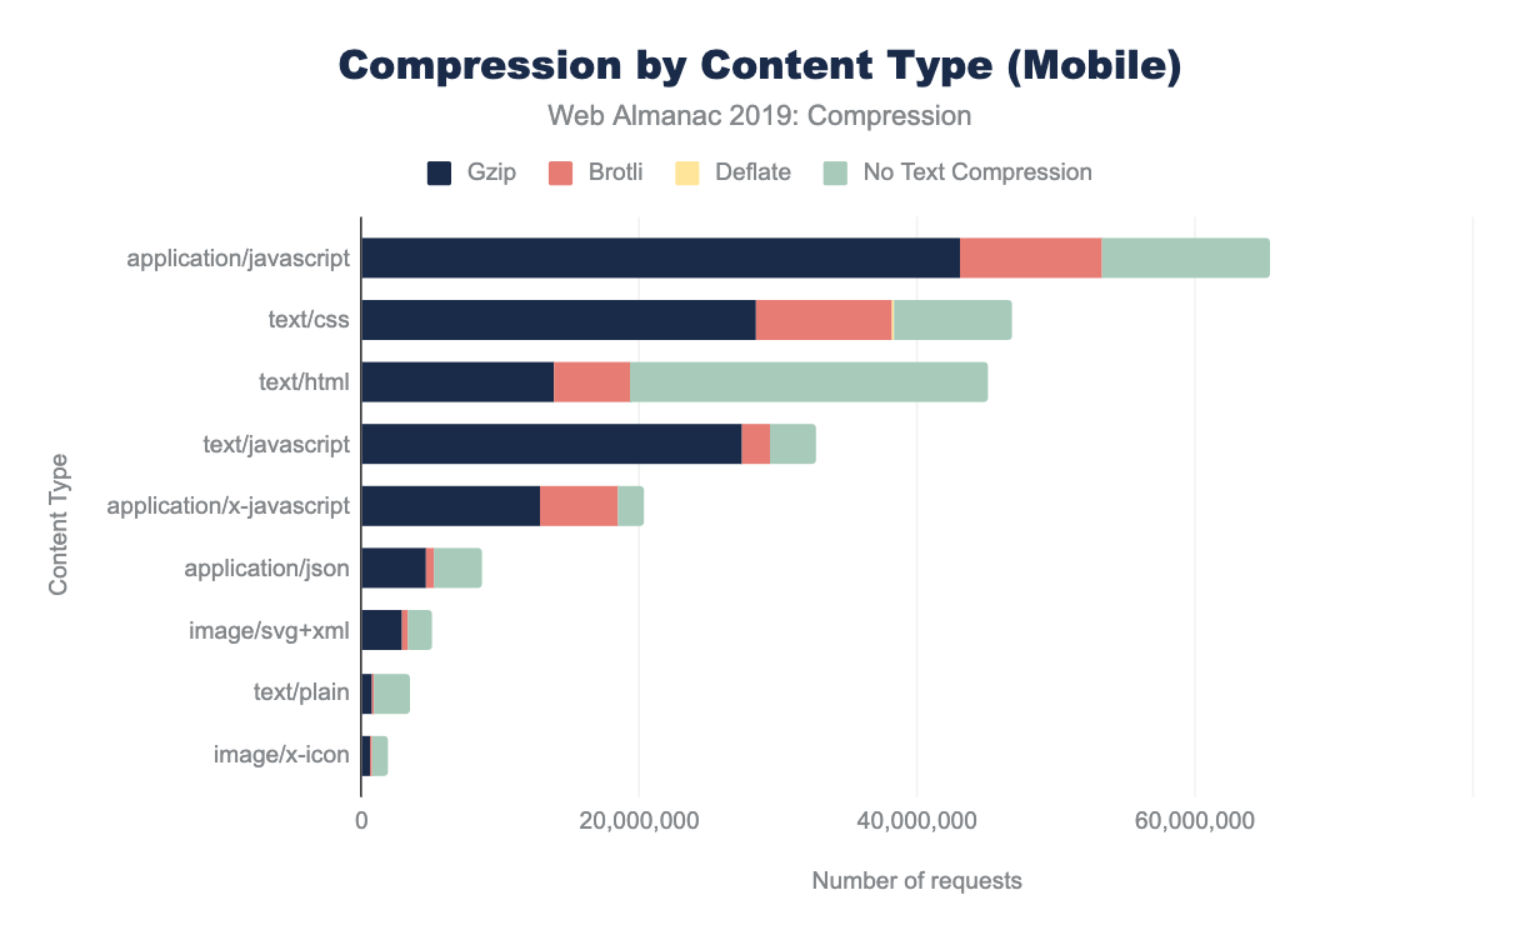 Figure 6. Compression by content type for mobile.